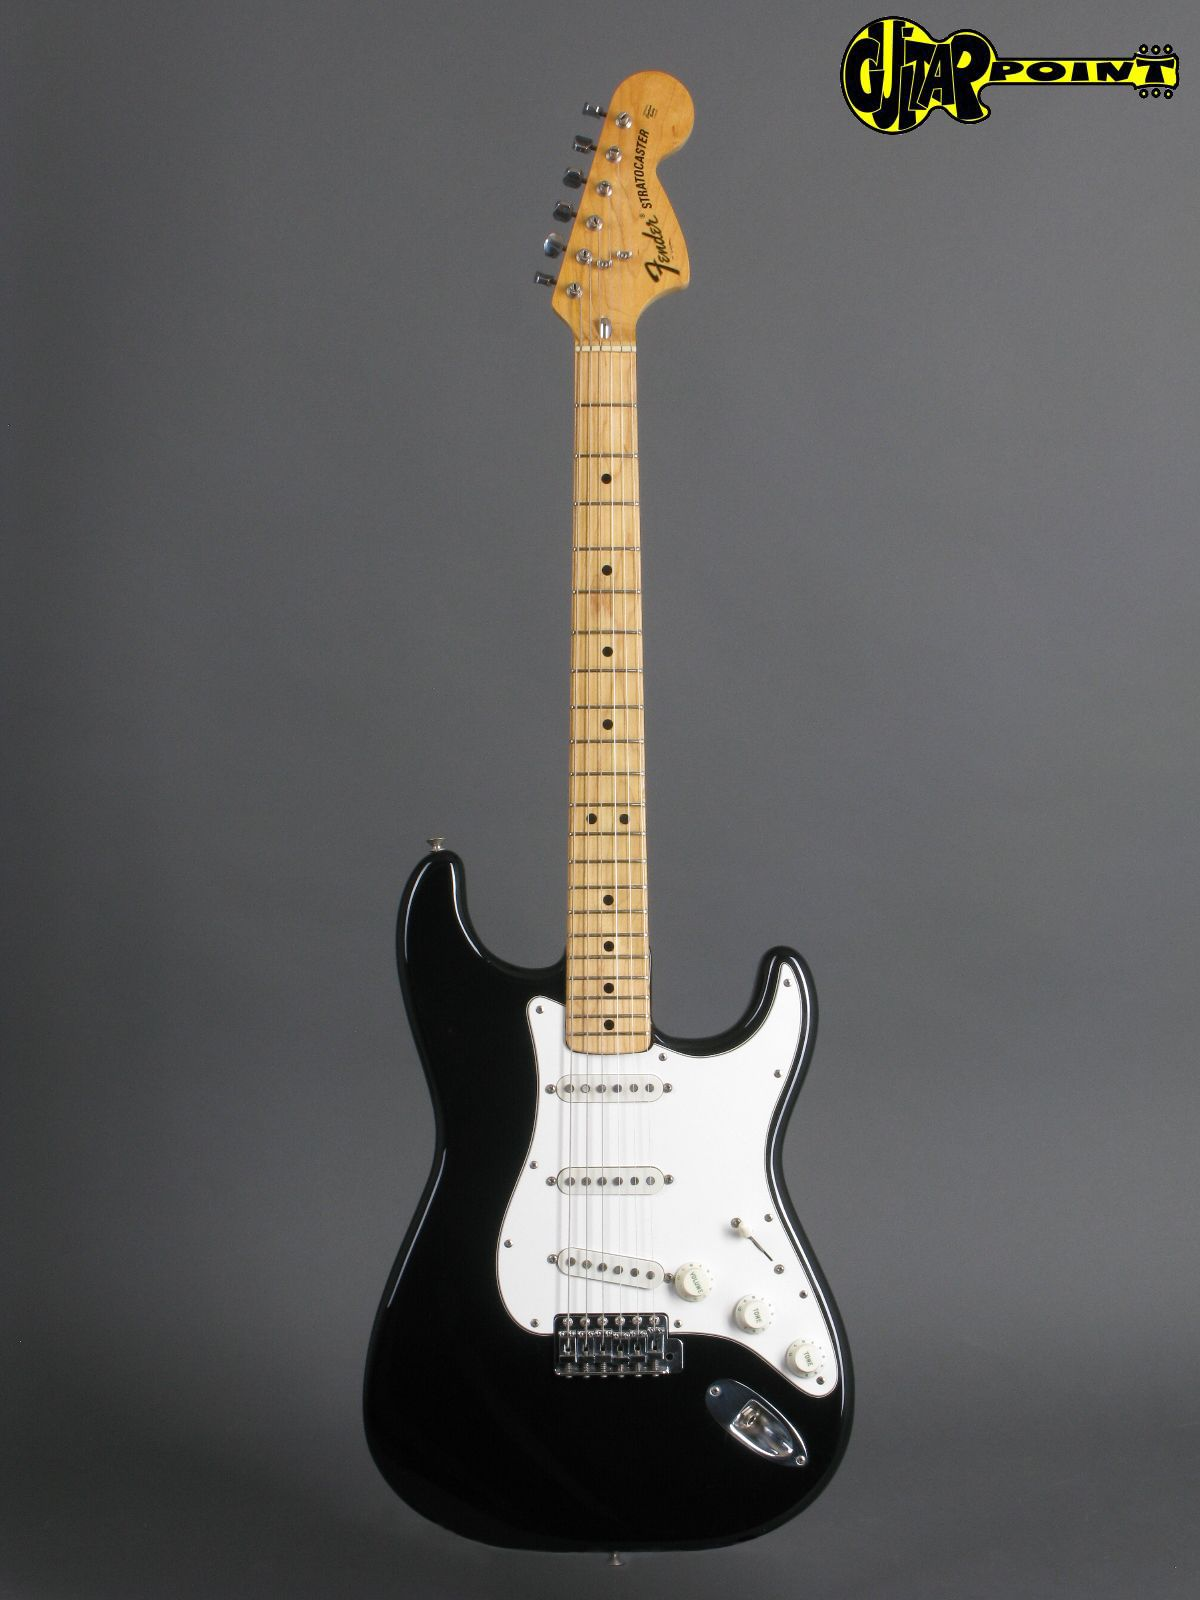 Fender Stratocaster 1974 Black Guitar For Sale Guitarpoint